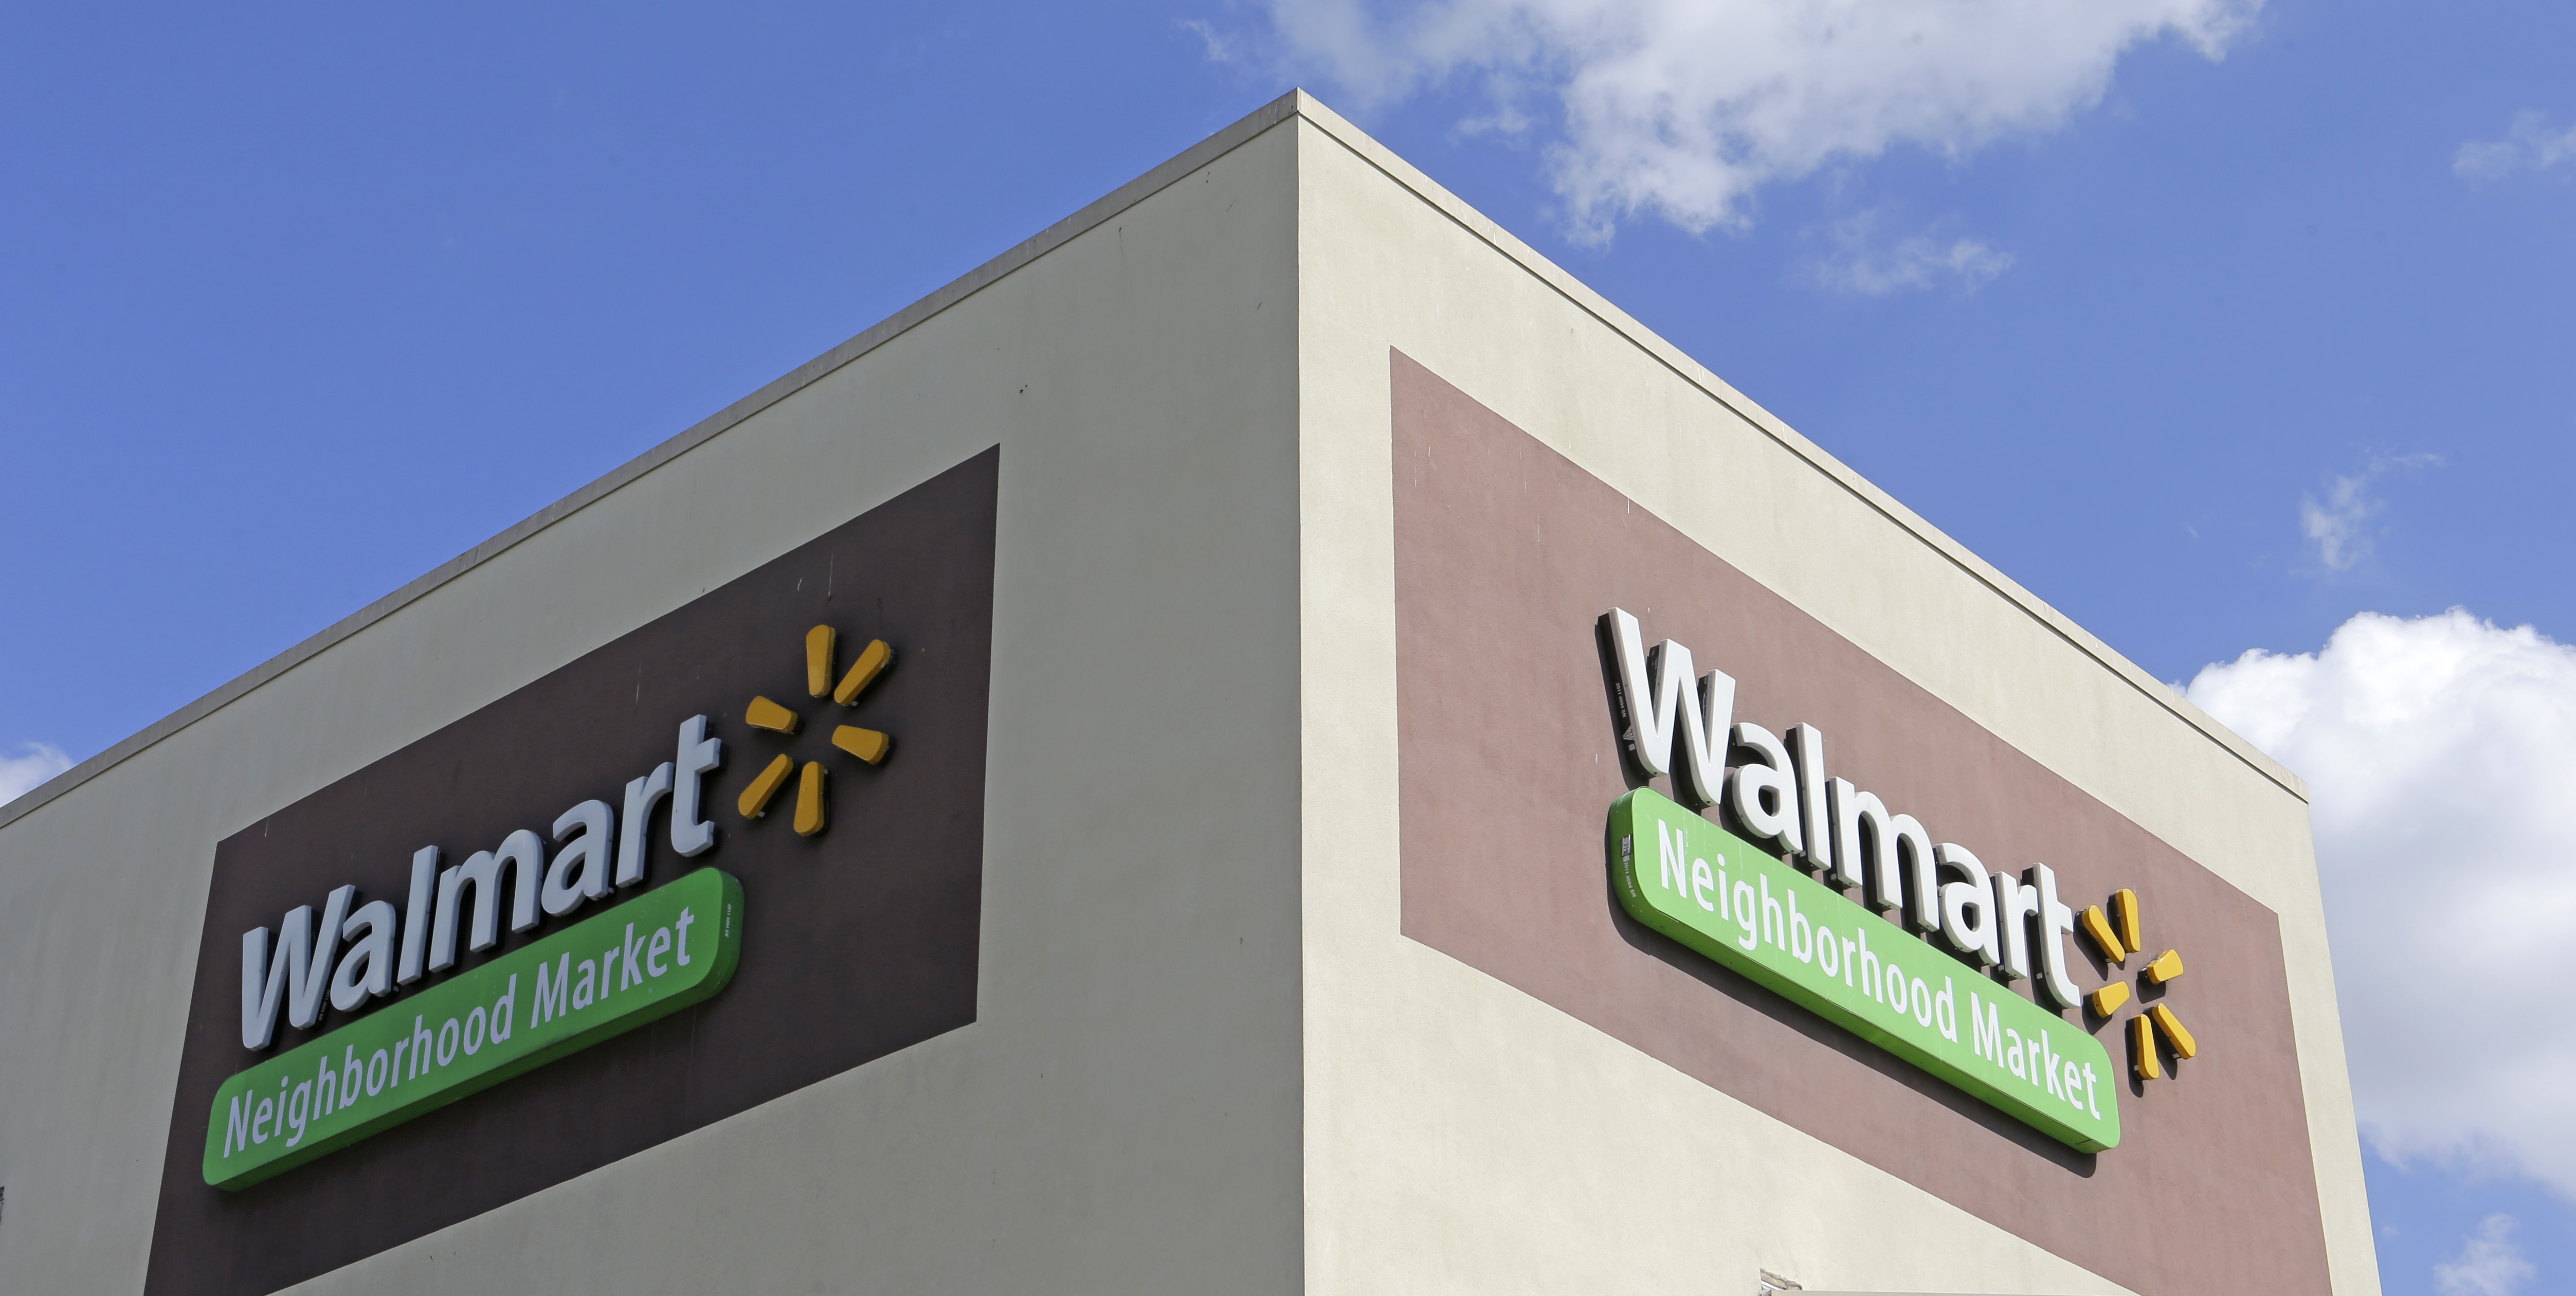 Copyright 2017 The Associated Press. All rights reserved. This material may not be published, broadcast, rewritten or redistributed without permission.Mandatory Credit: Photo by AP/REX/Shutterstock (8607154a)This, photo shows Wal-Mart signage at one of the company's neighborhood markets, in Hialeah, Fla. Starting April 19, 2017, Wal-Mart says it will offer discounts on thousands of online-only items when customers elect to have them shipped to one of the company's stores for pickupWal-Mart-Pickup-Discount, Hialeah, USA - 08 Feb 2017